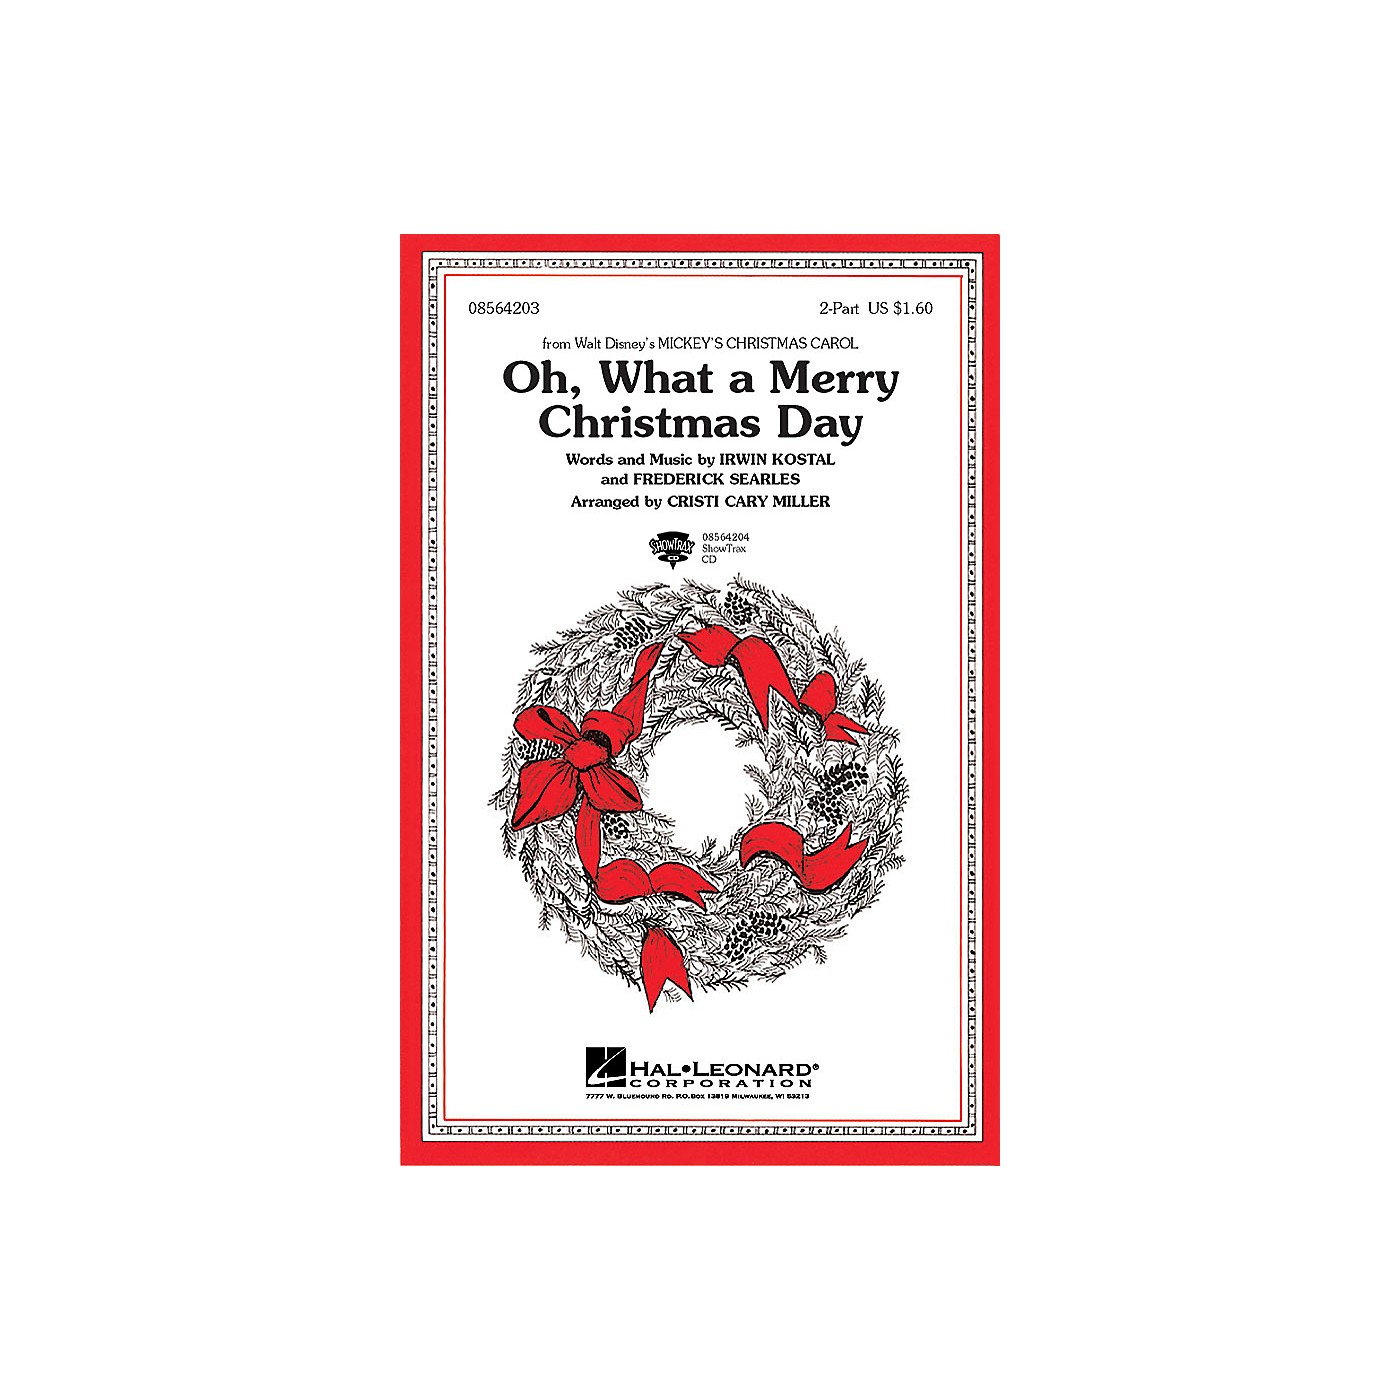 Hal Leonard Oh What a Merry Christmas Day (from Mickey's Christmas Carol) ShowTrax CD Arranged by Cristi Cary Miller thumbnail